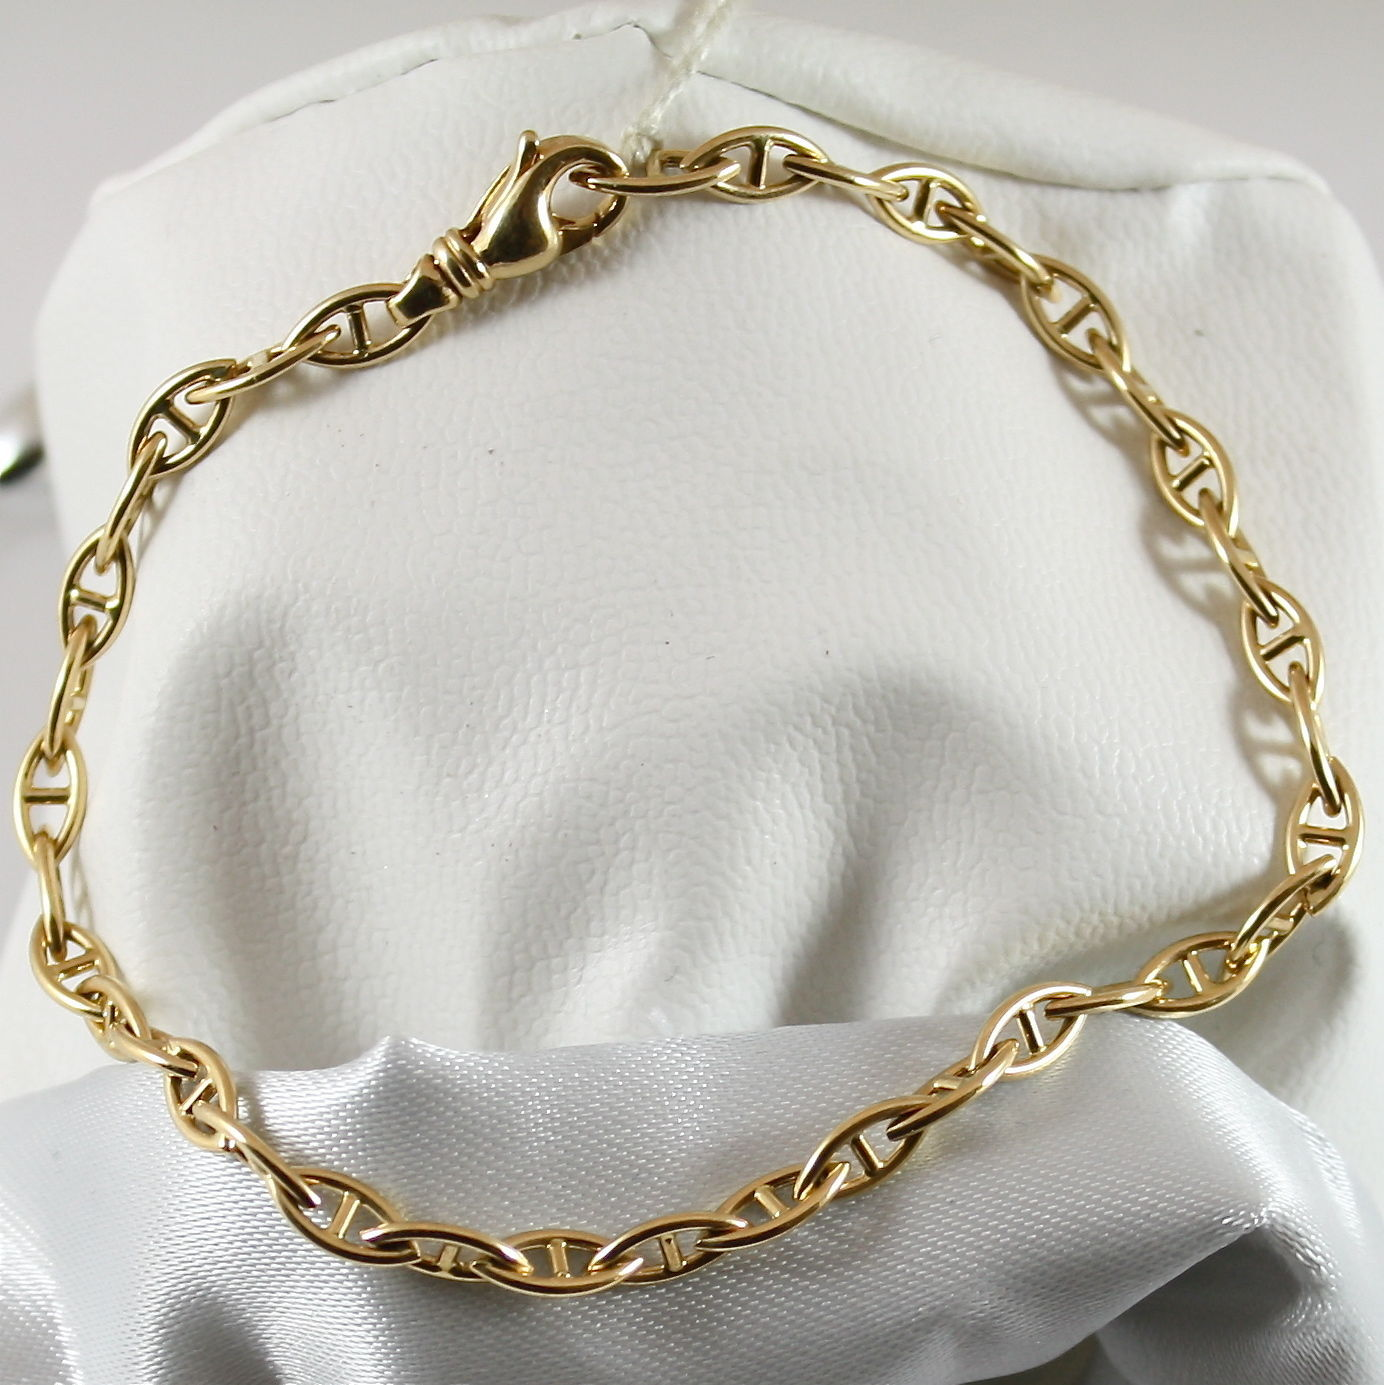 18K 750 YELLOW GOLD SOLID BRACELET, YELLOW GOLD WITH OVAL SEA MESH MADE IN ITALY